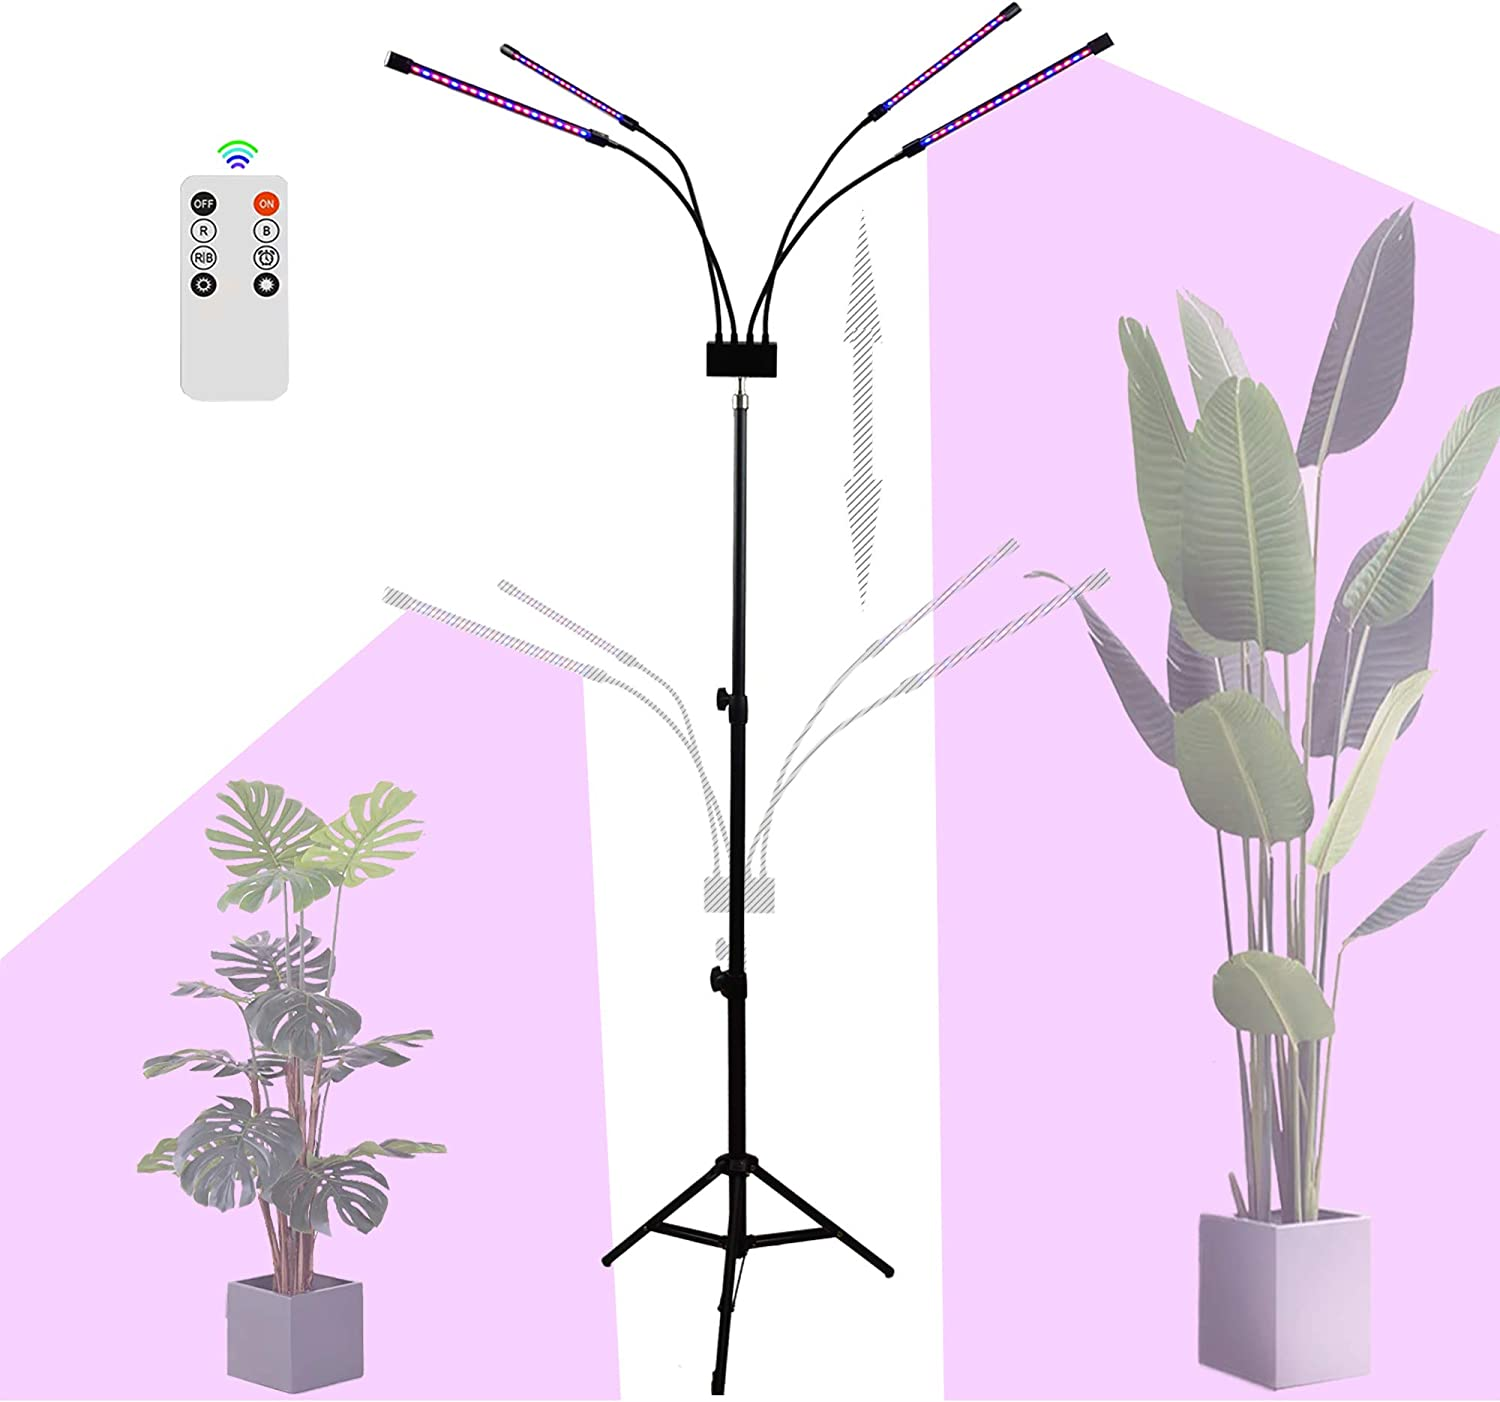 LED Grow Light Stand with Remote, AINEEDY 4 Head 40W 80 LED Floor Growing Lamp with Stand 3/9/12H Timer for Indoor Plant in Living Room, Flower House, Adjustable Tripod 27-59 in